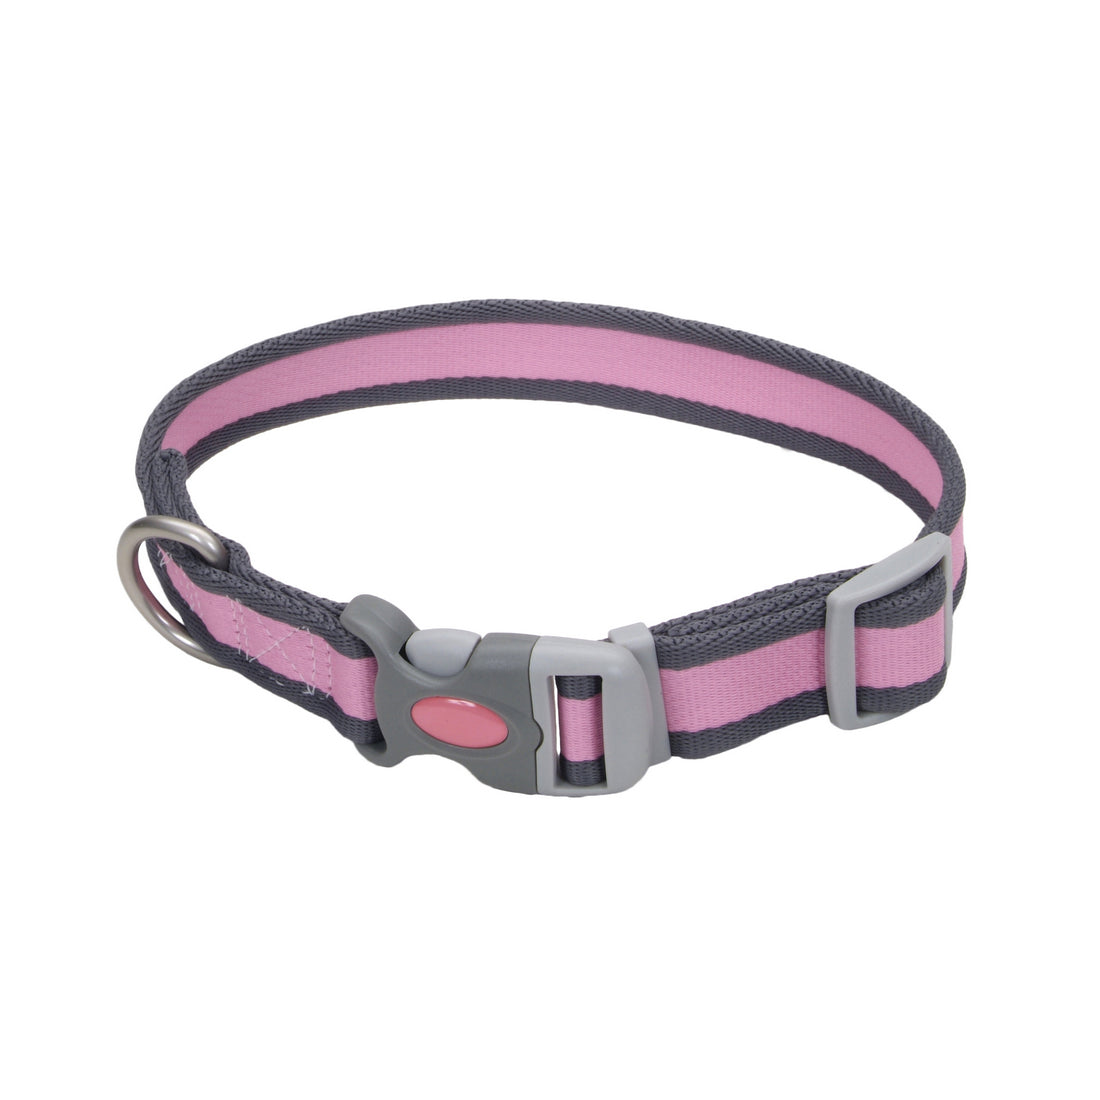 "Coastal Pet Attire Pro Adjustable Reflective Collar 8-12"" - 3/4"" Pink with Gray"